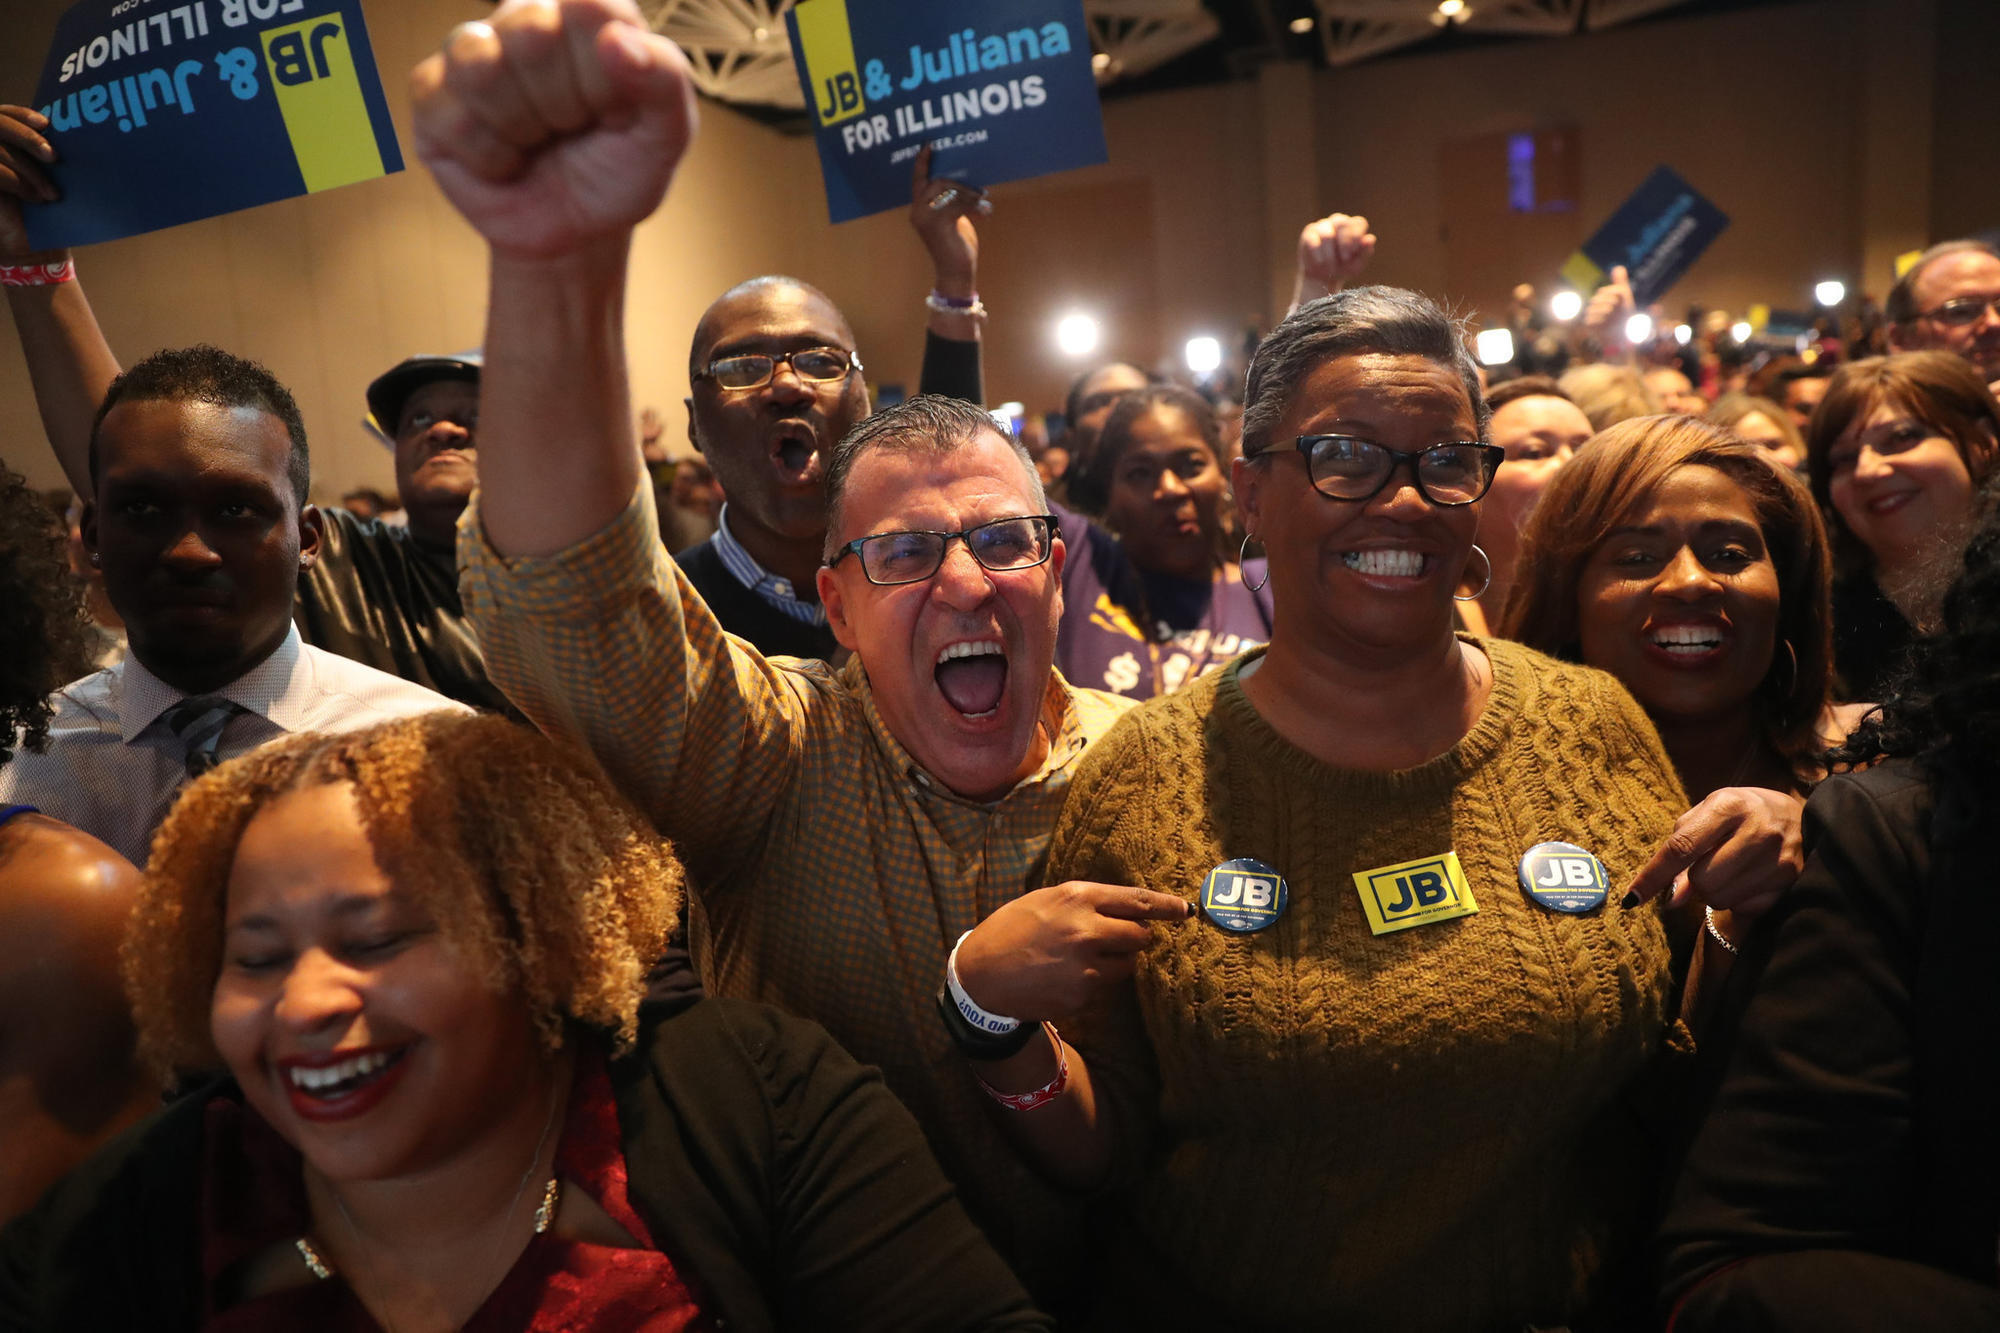 Election Wont End This Overnight But >> How Illinois Democrats Won A Statewide Sweep And 2 Pivotal